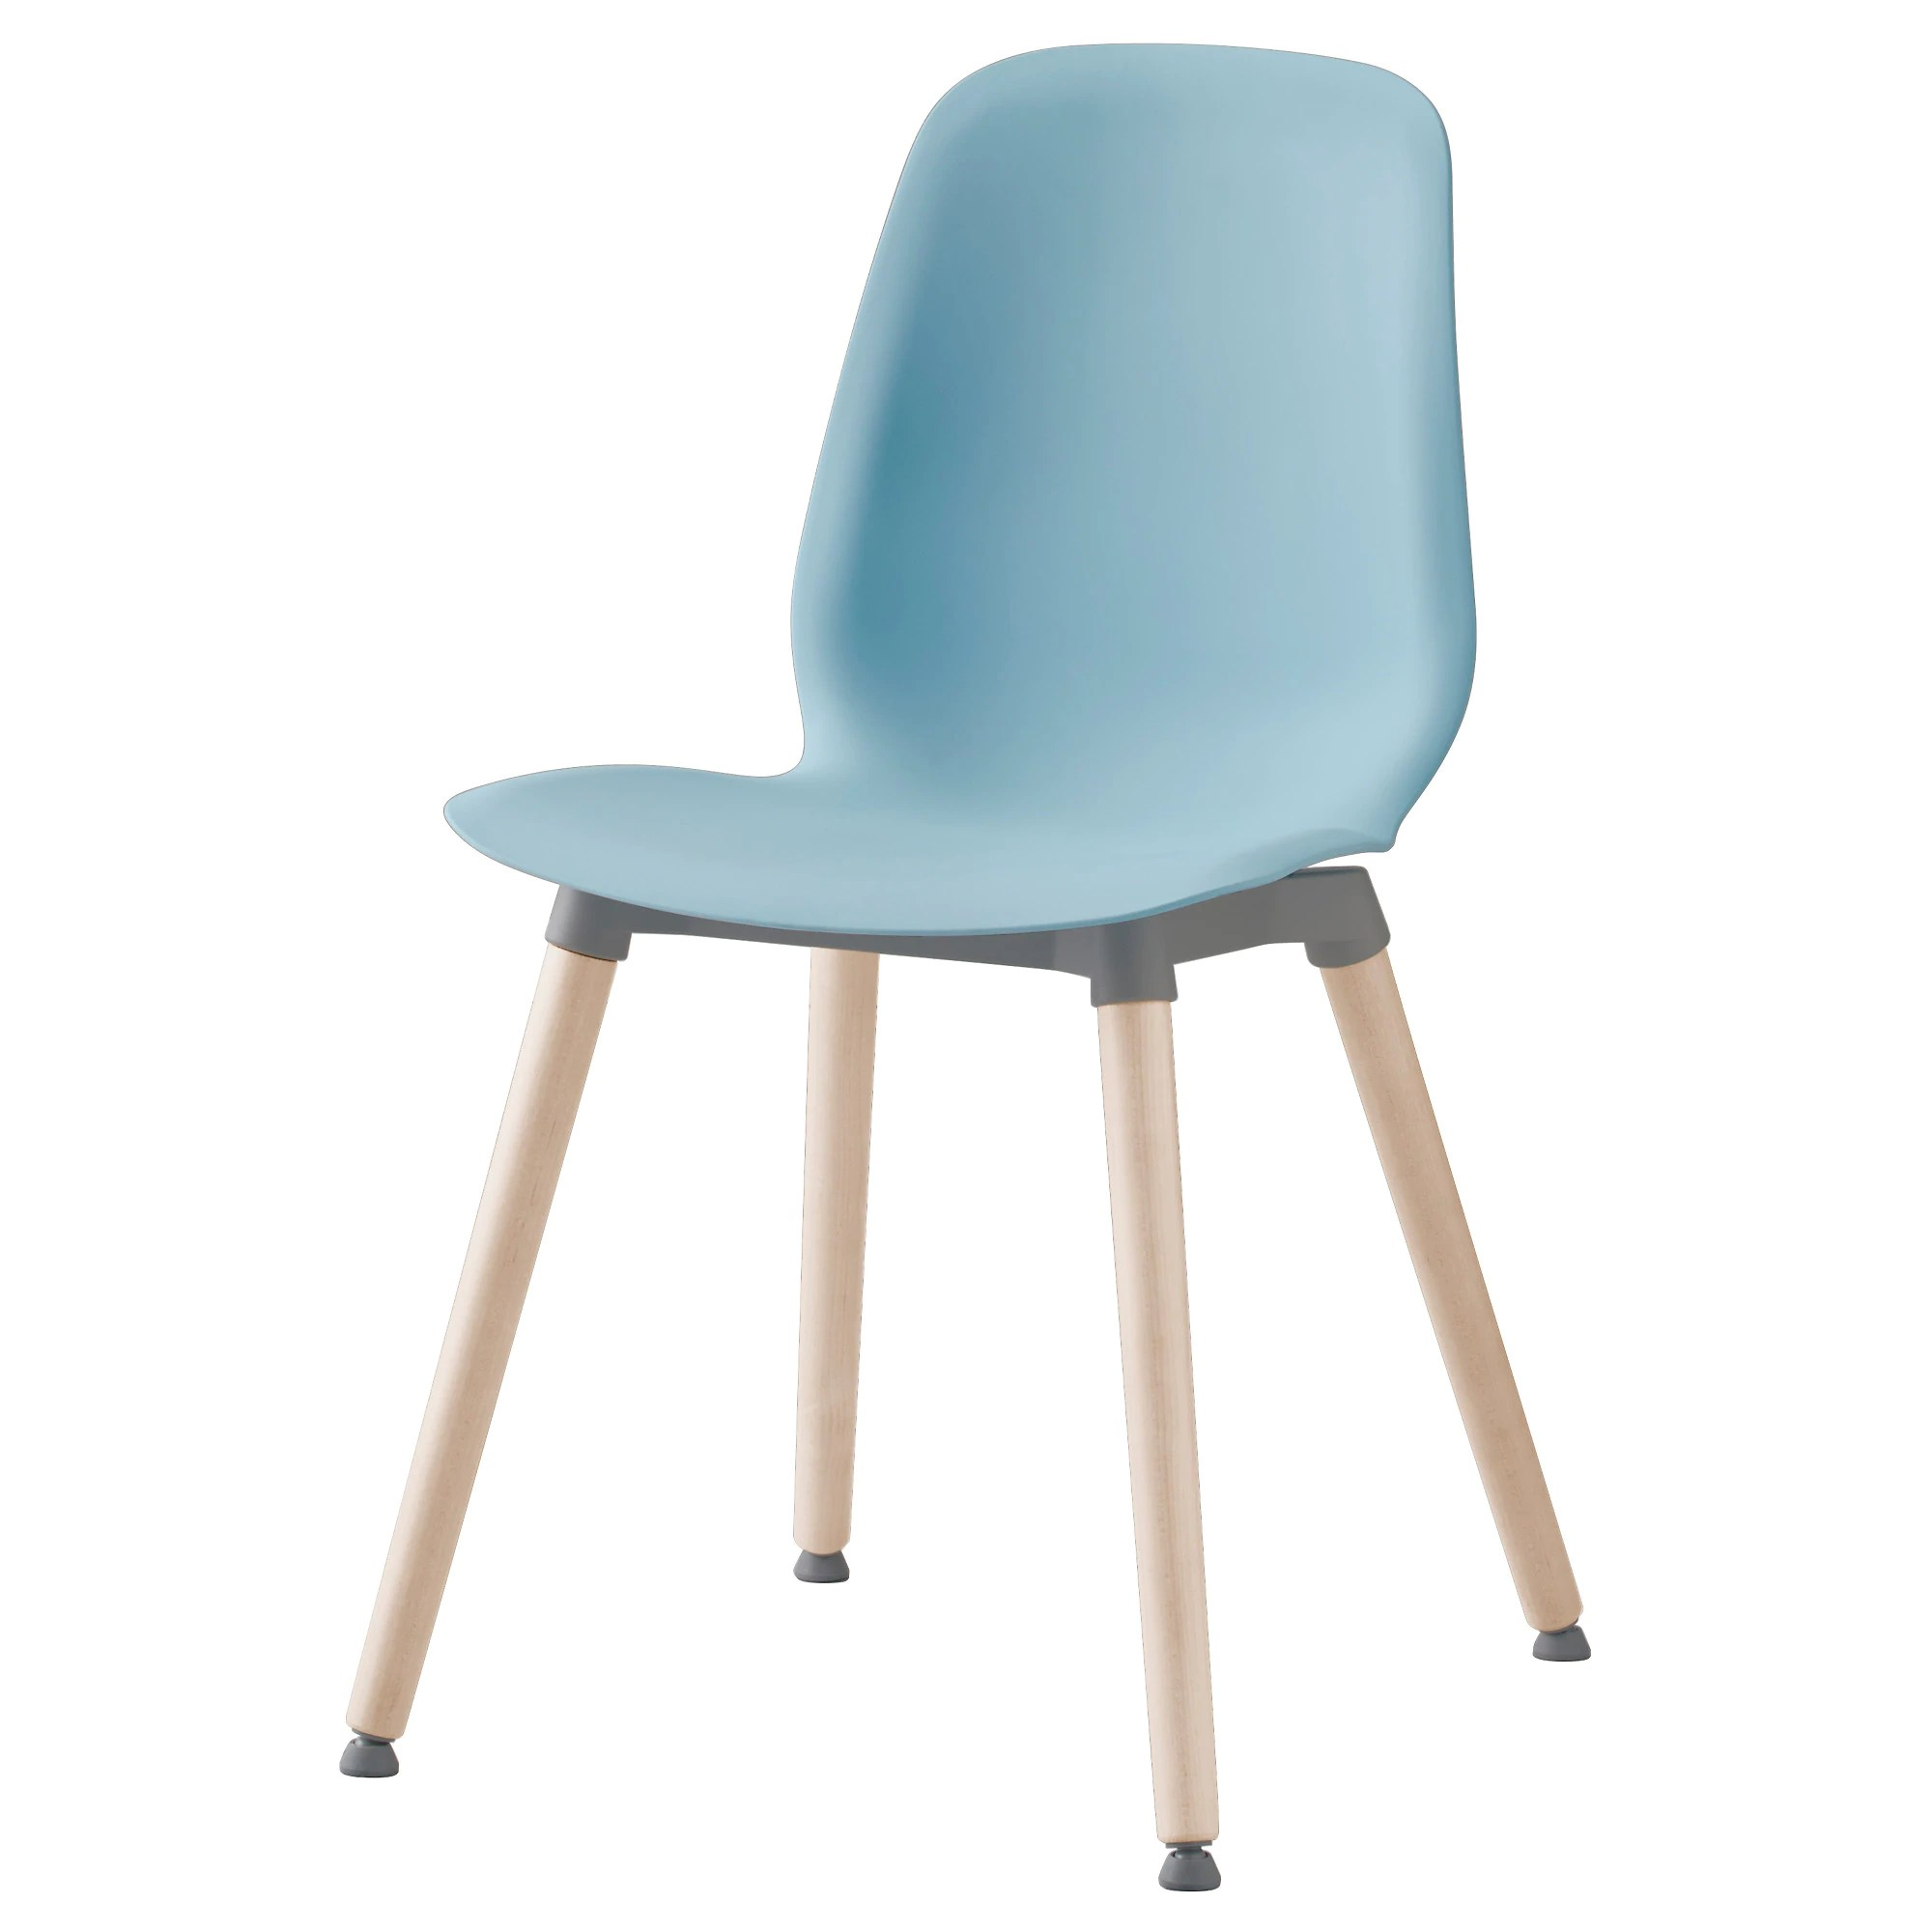 teal kitchen chairs LEIFARNE chair light blue Ernfrid birch Tested for lb Width 20